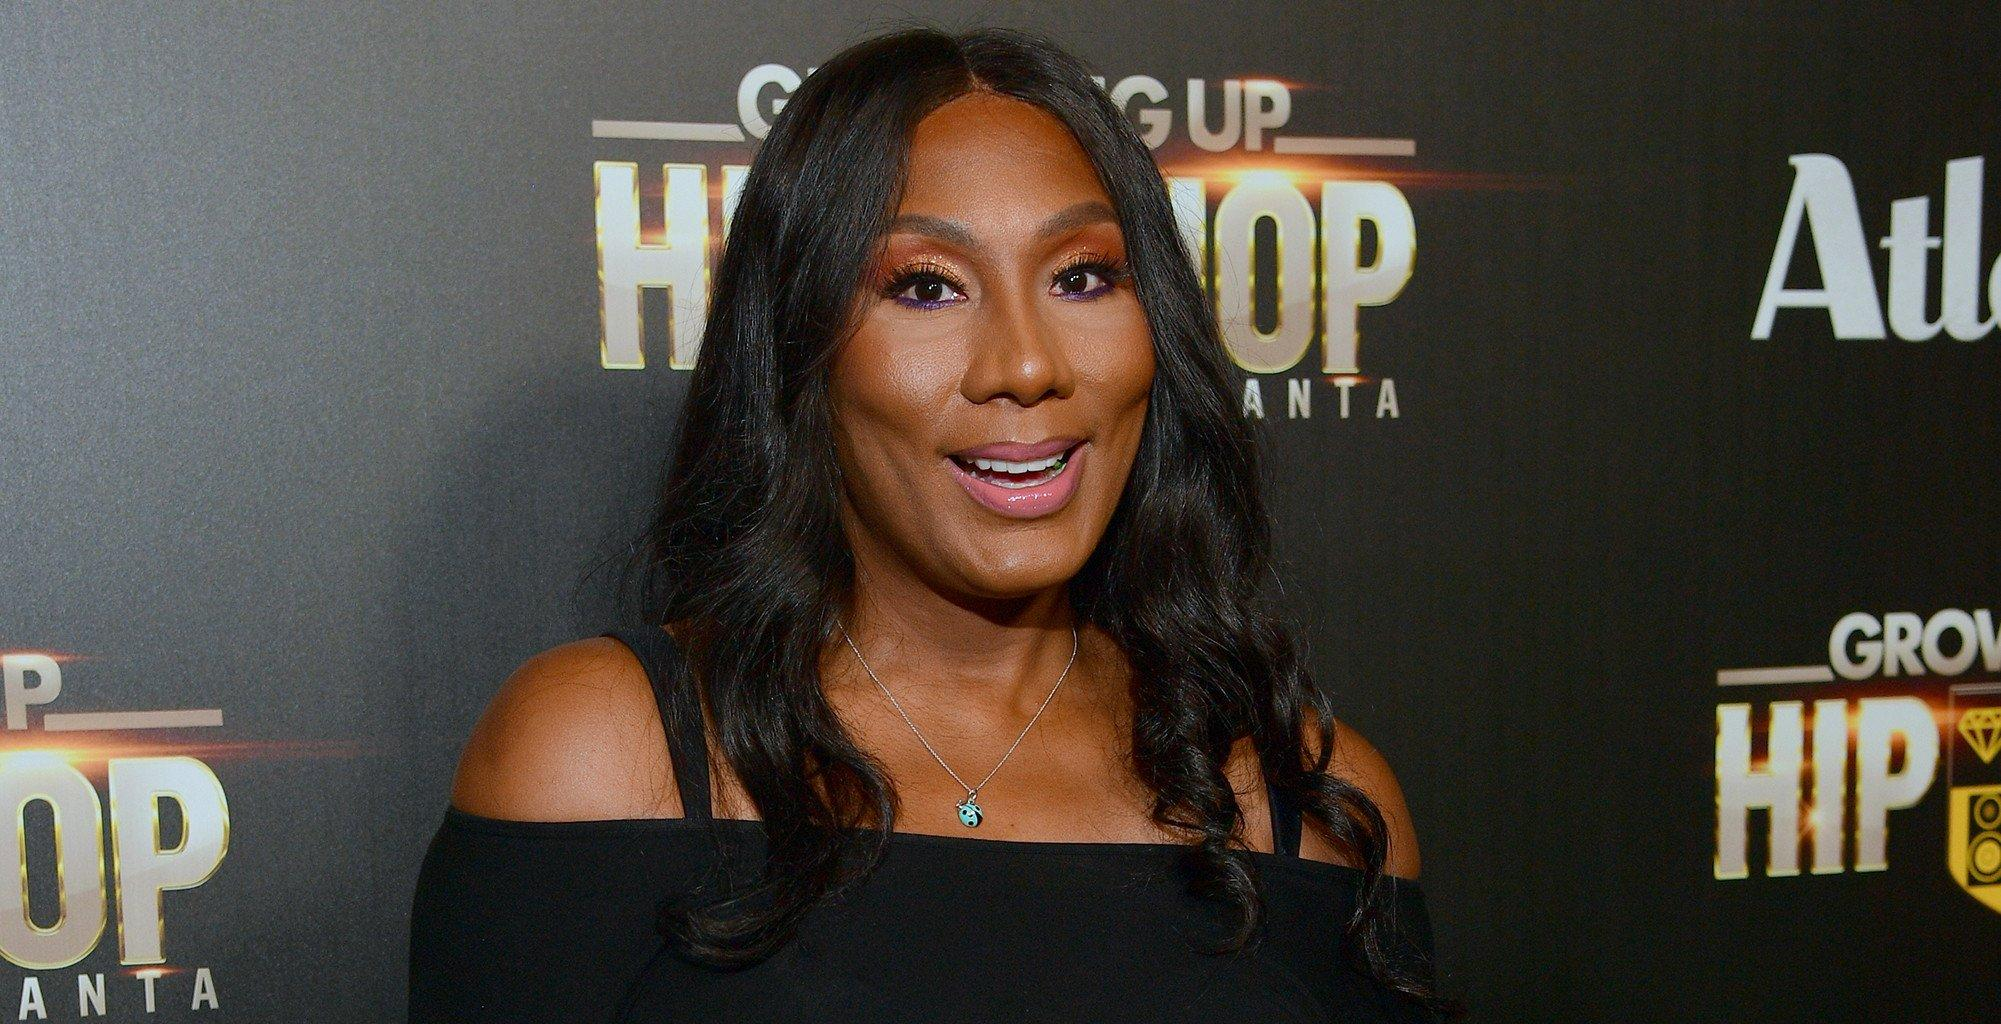 Towanda Braxton Wishes A Happy Birthday To Her Son - See The Funny Clips She Shared To Mark The Event